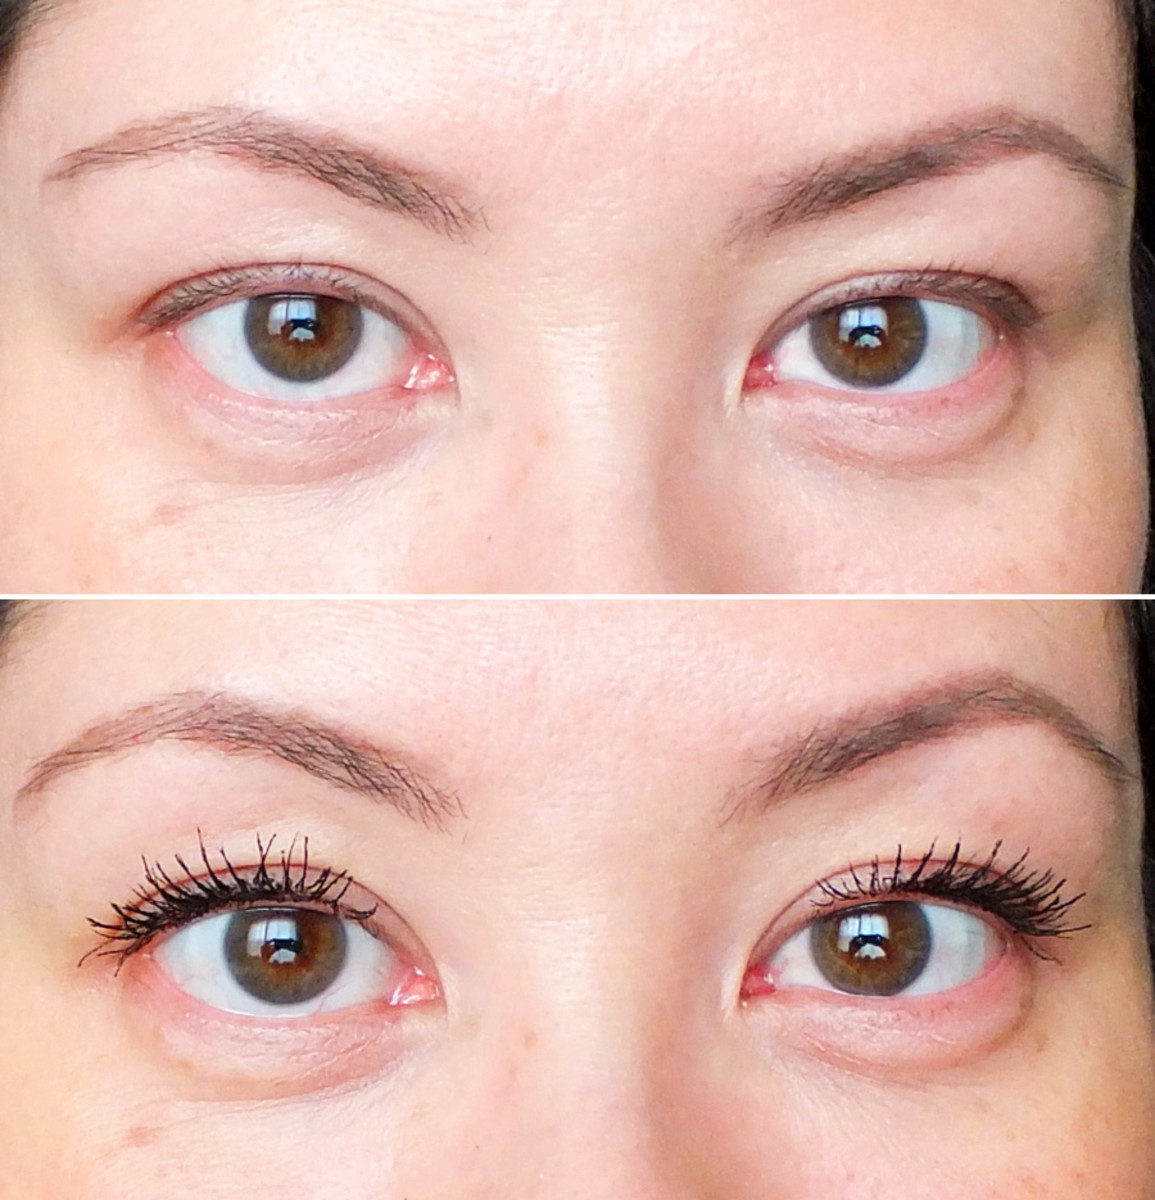 L'Oréal Paris Voluminous Butterfly Mascara before and after (no tightlining)